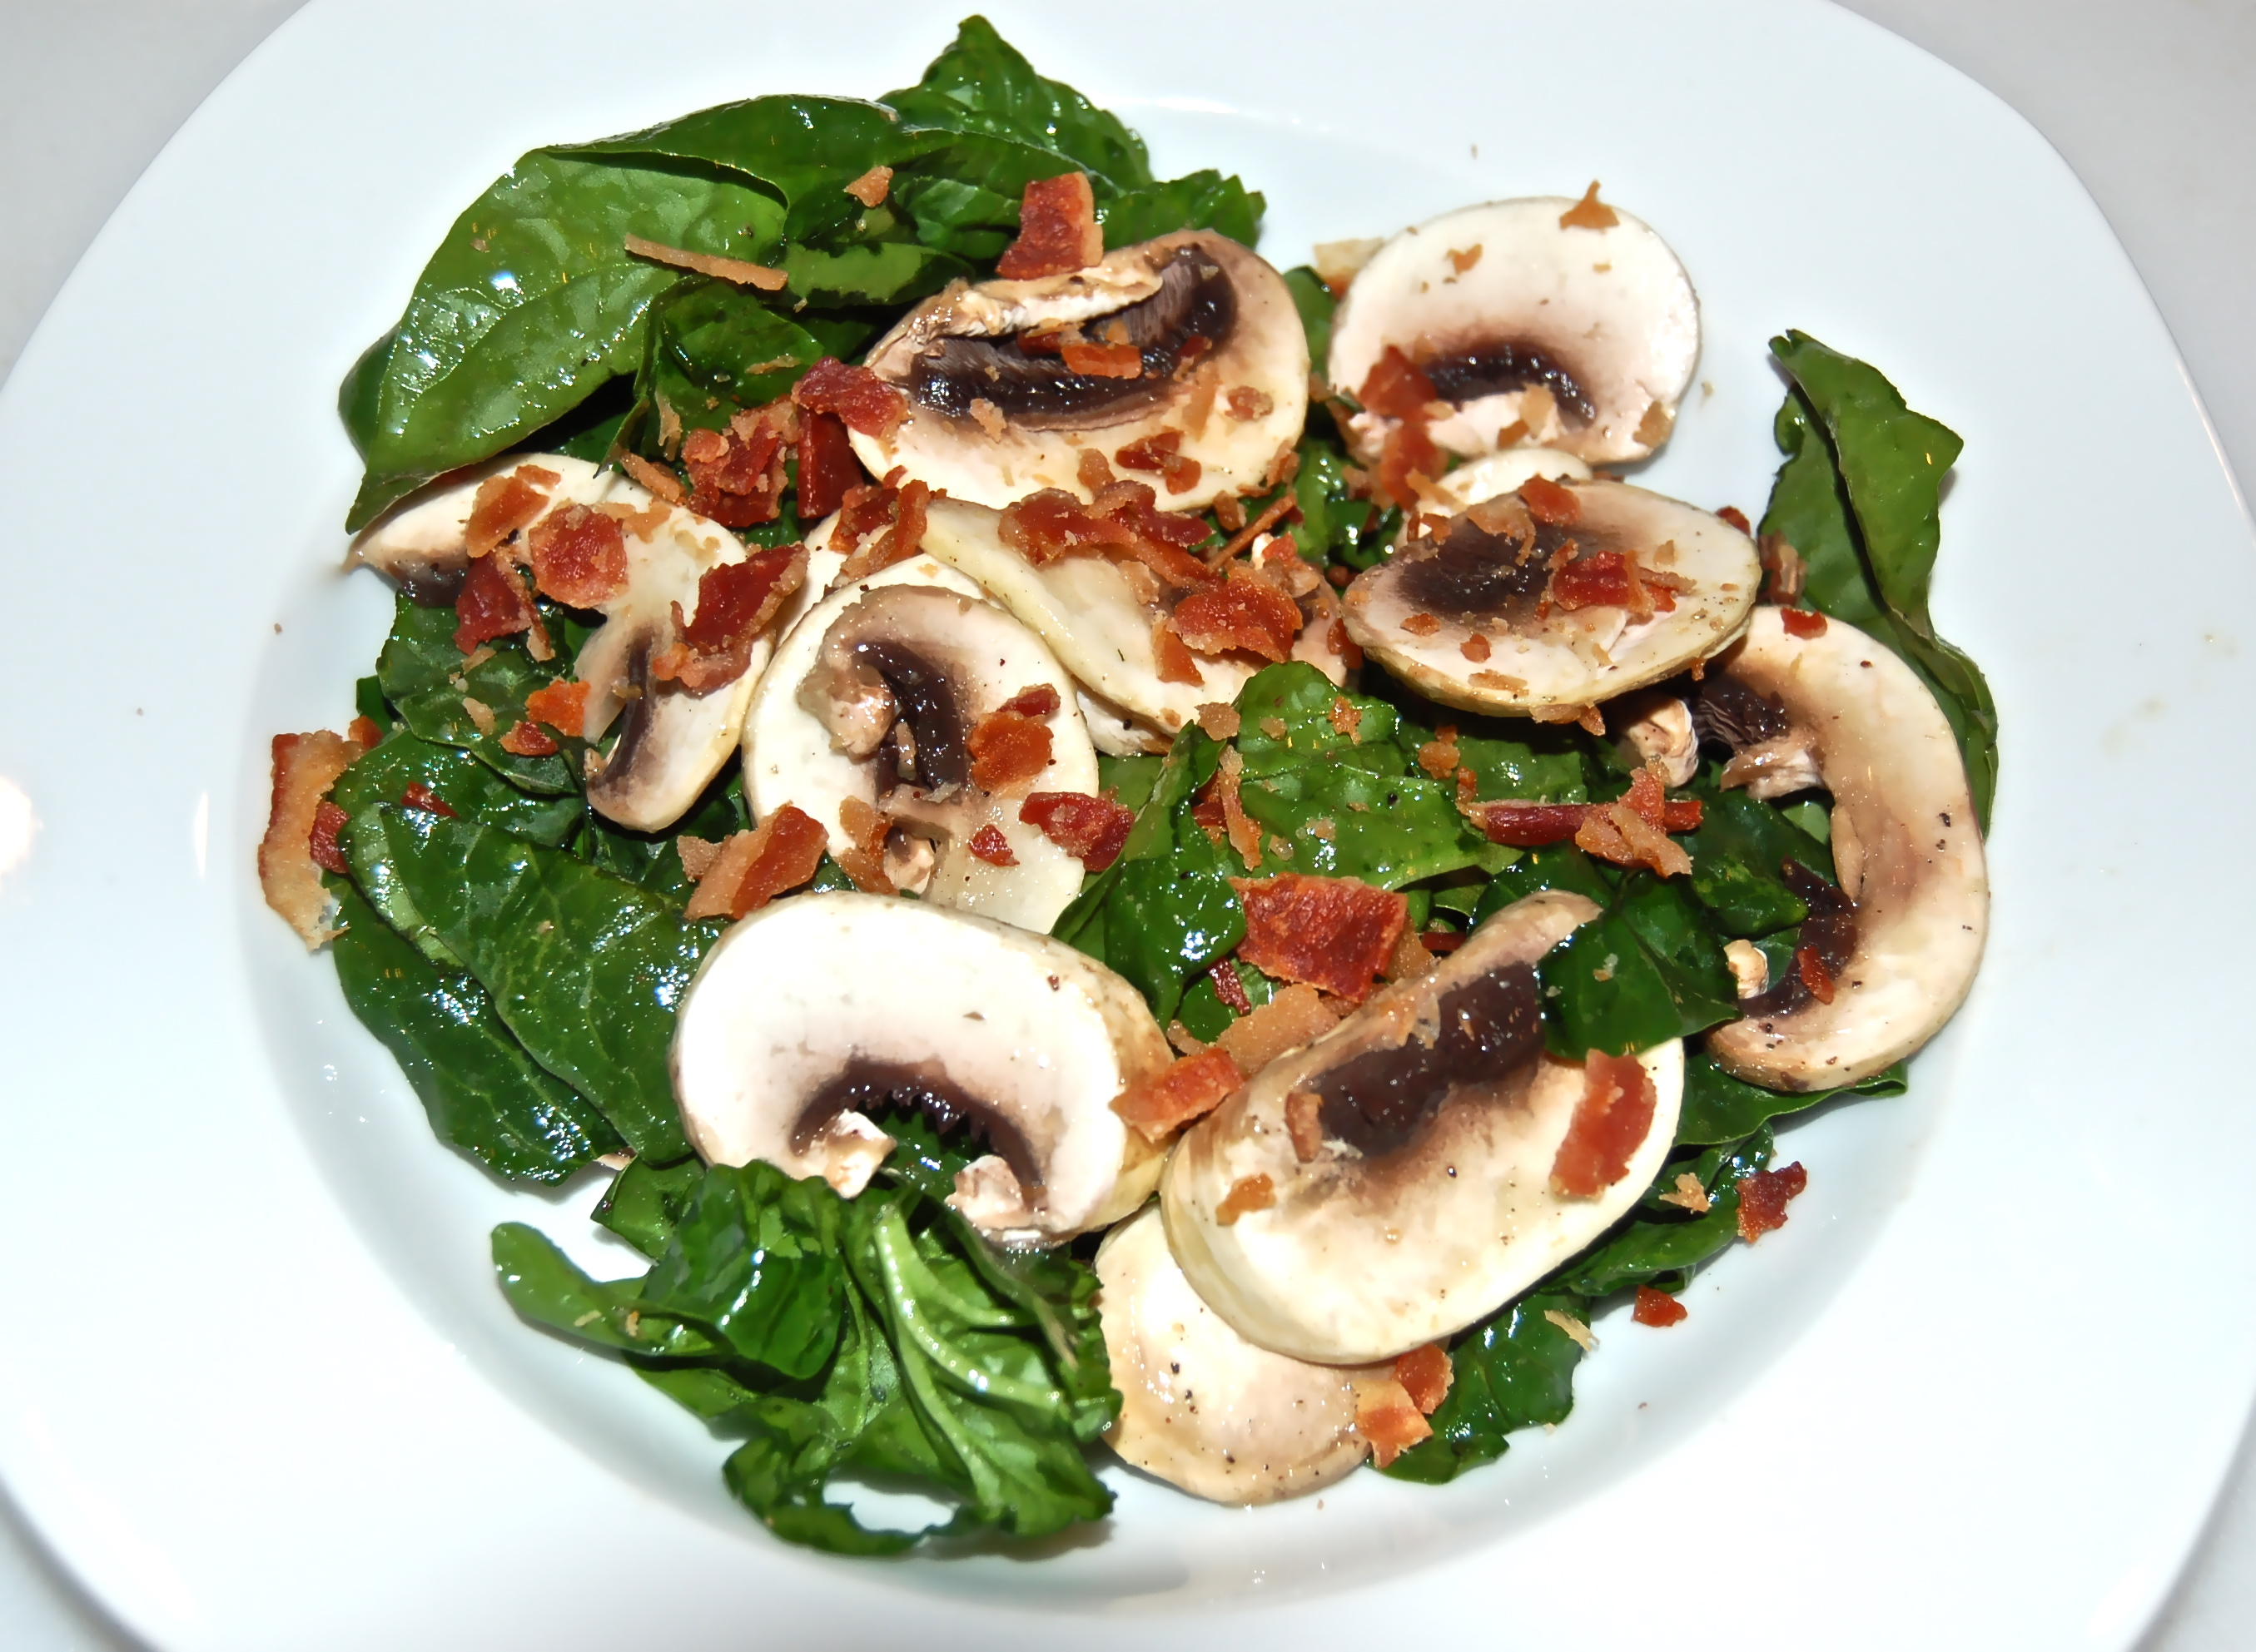 October 18, 2011 Spinach, Mushroom & Bacon Salad